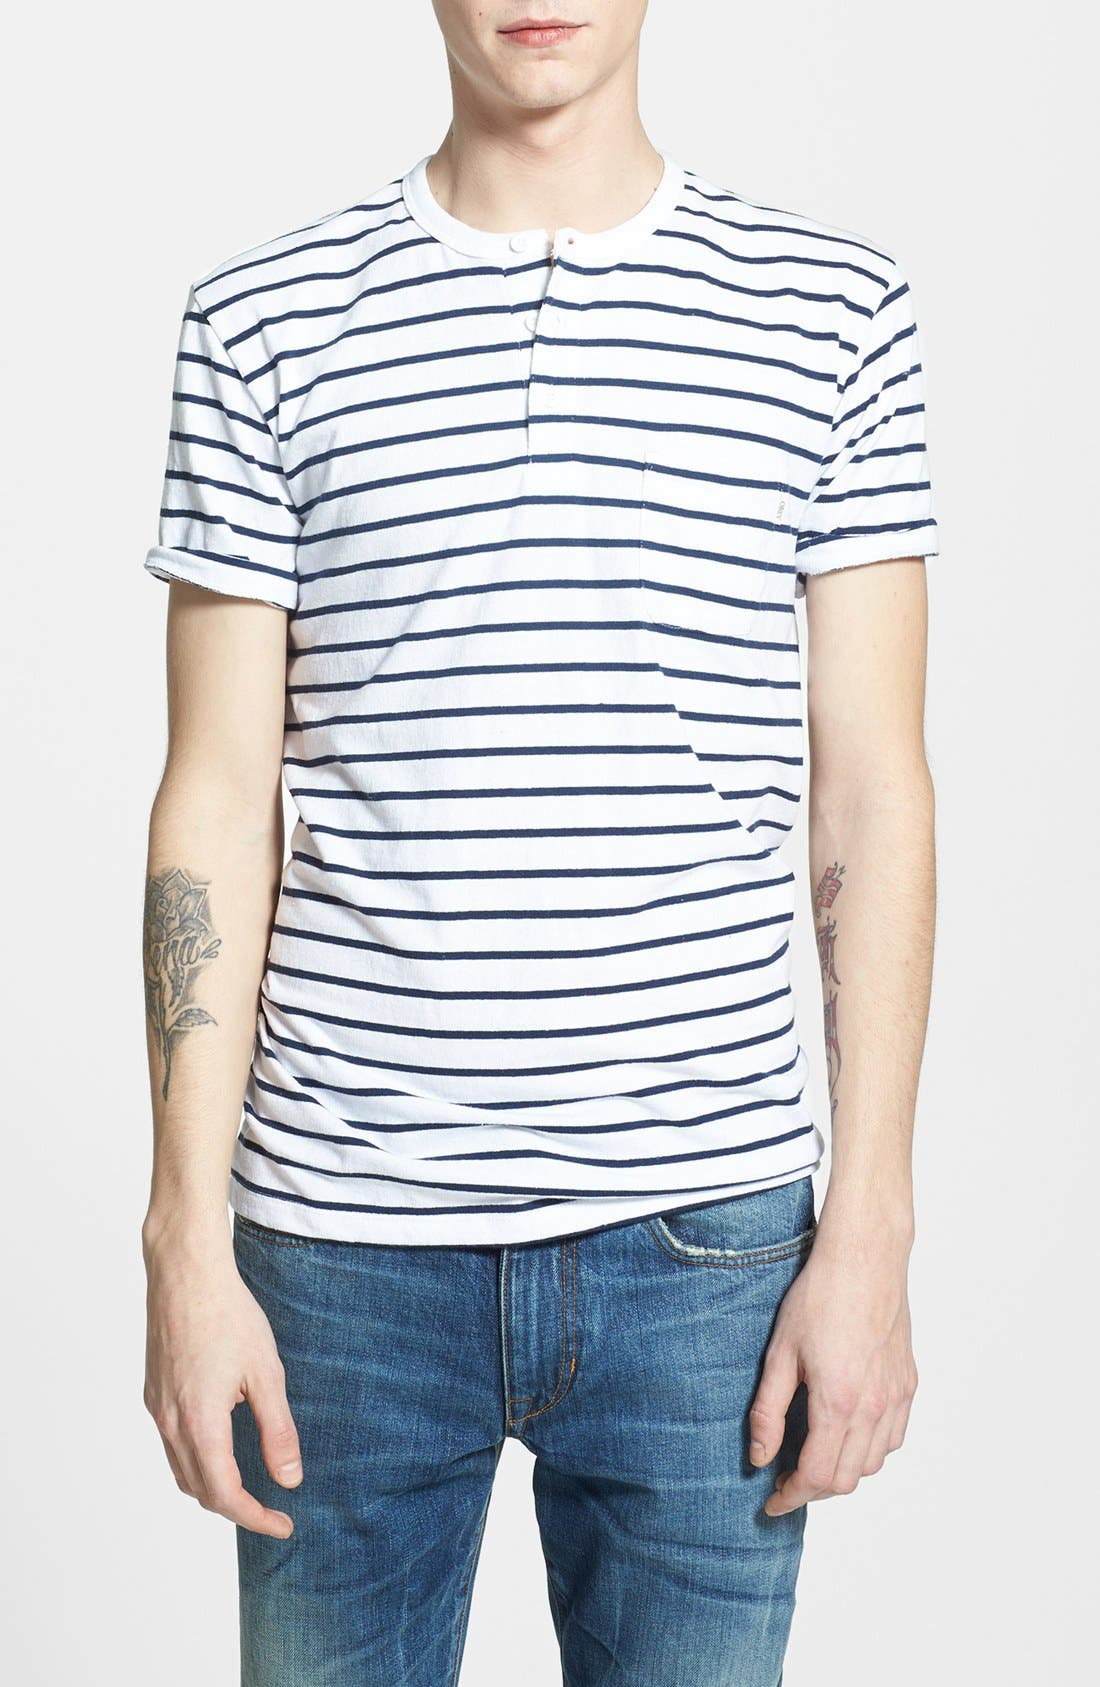 Main Image - Obey 'Charter' Short Sleeve Stripe Henley T-Shirt